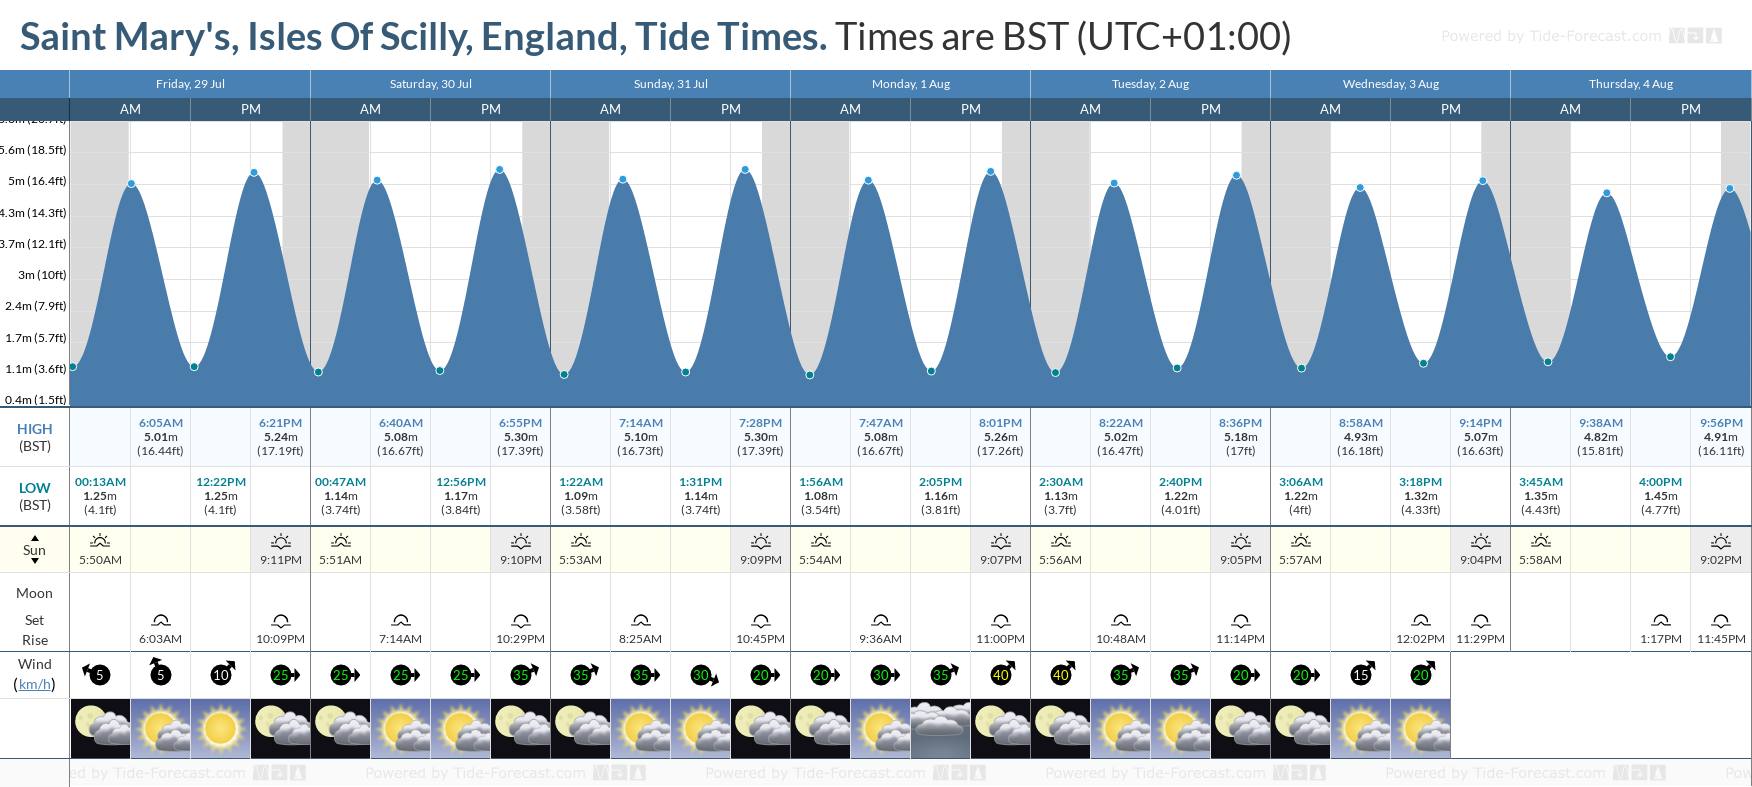 Saint Mary's, Isles Of Scilly, England Tide Chart including high and low tide tide times for the next 7 days